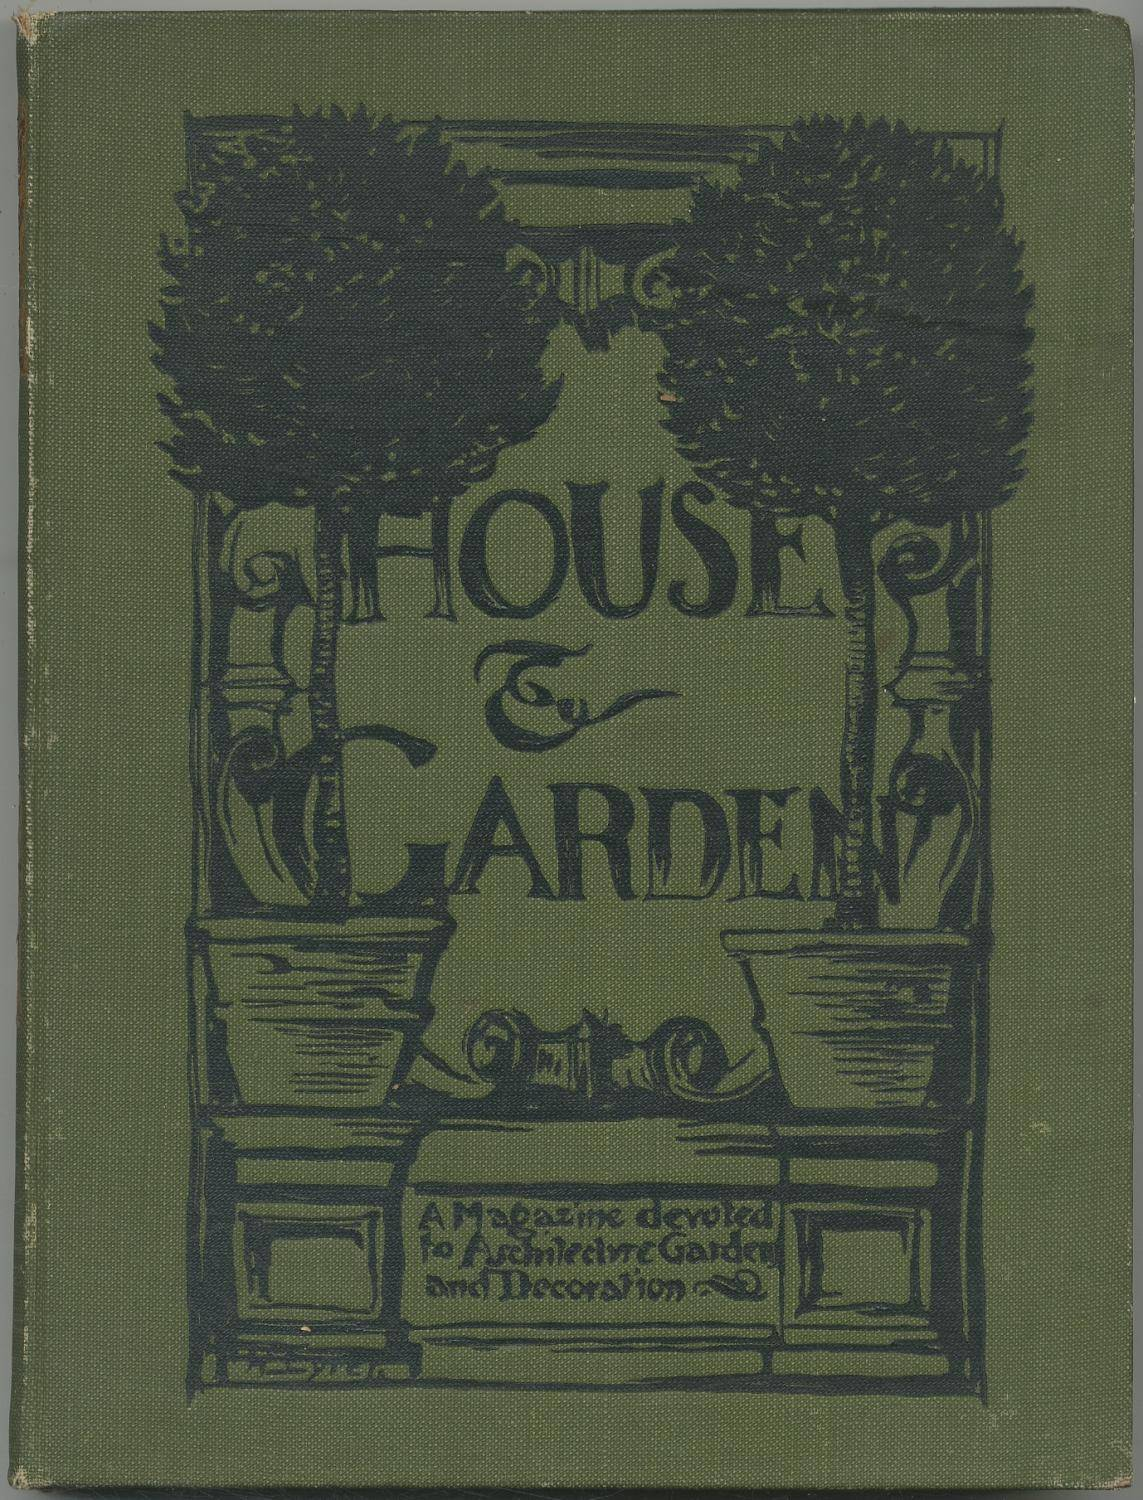 House and Garden: A monthly magazine devoted to architecture, gardens, decoration, Civic and Outdoor Art. Volume Three. January to June, 1903 WISE, H